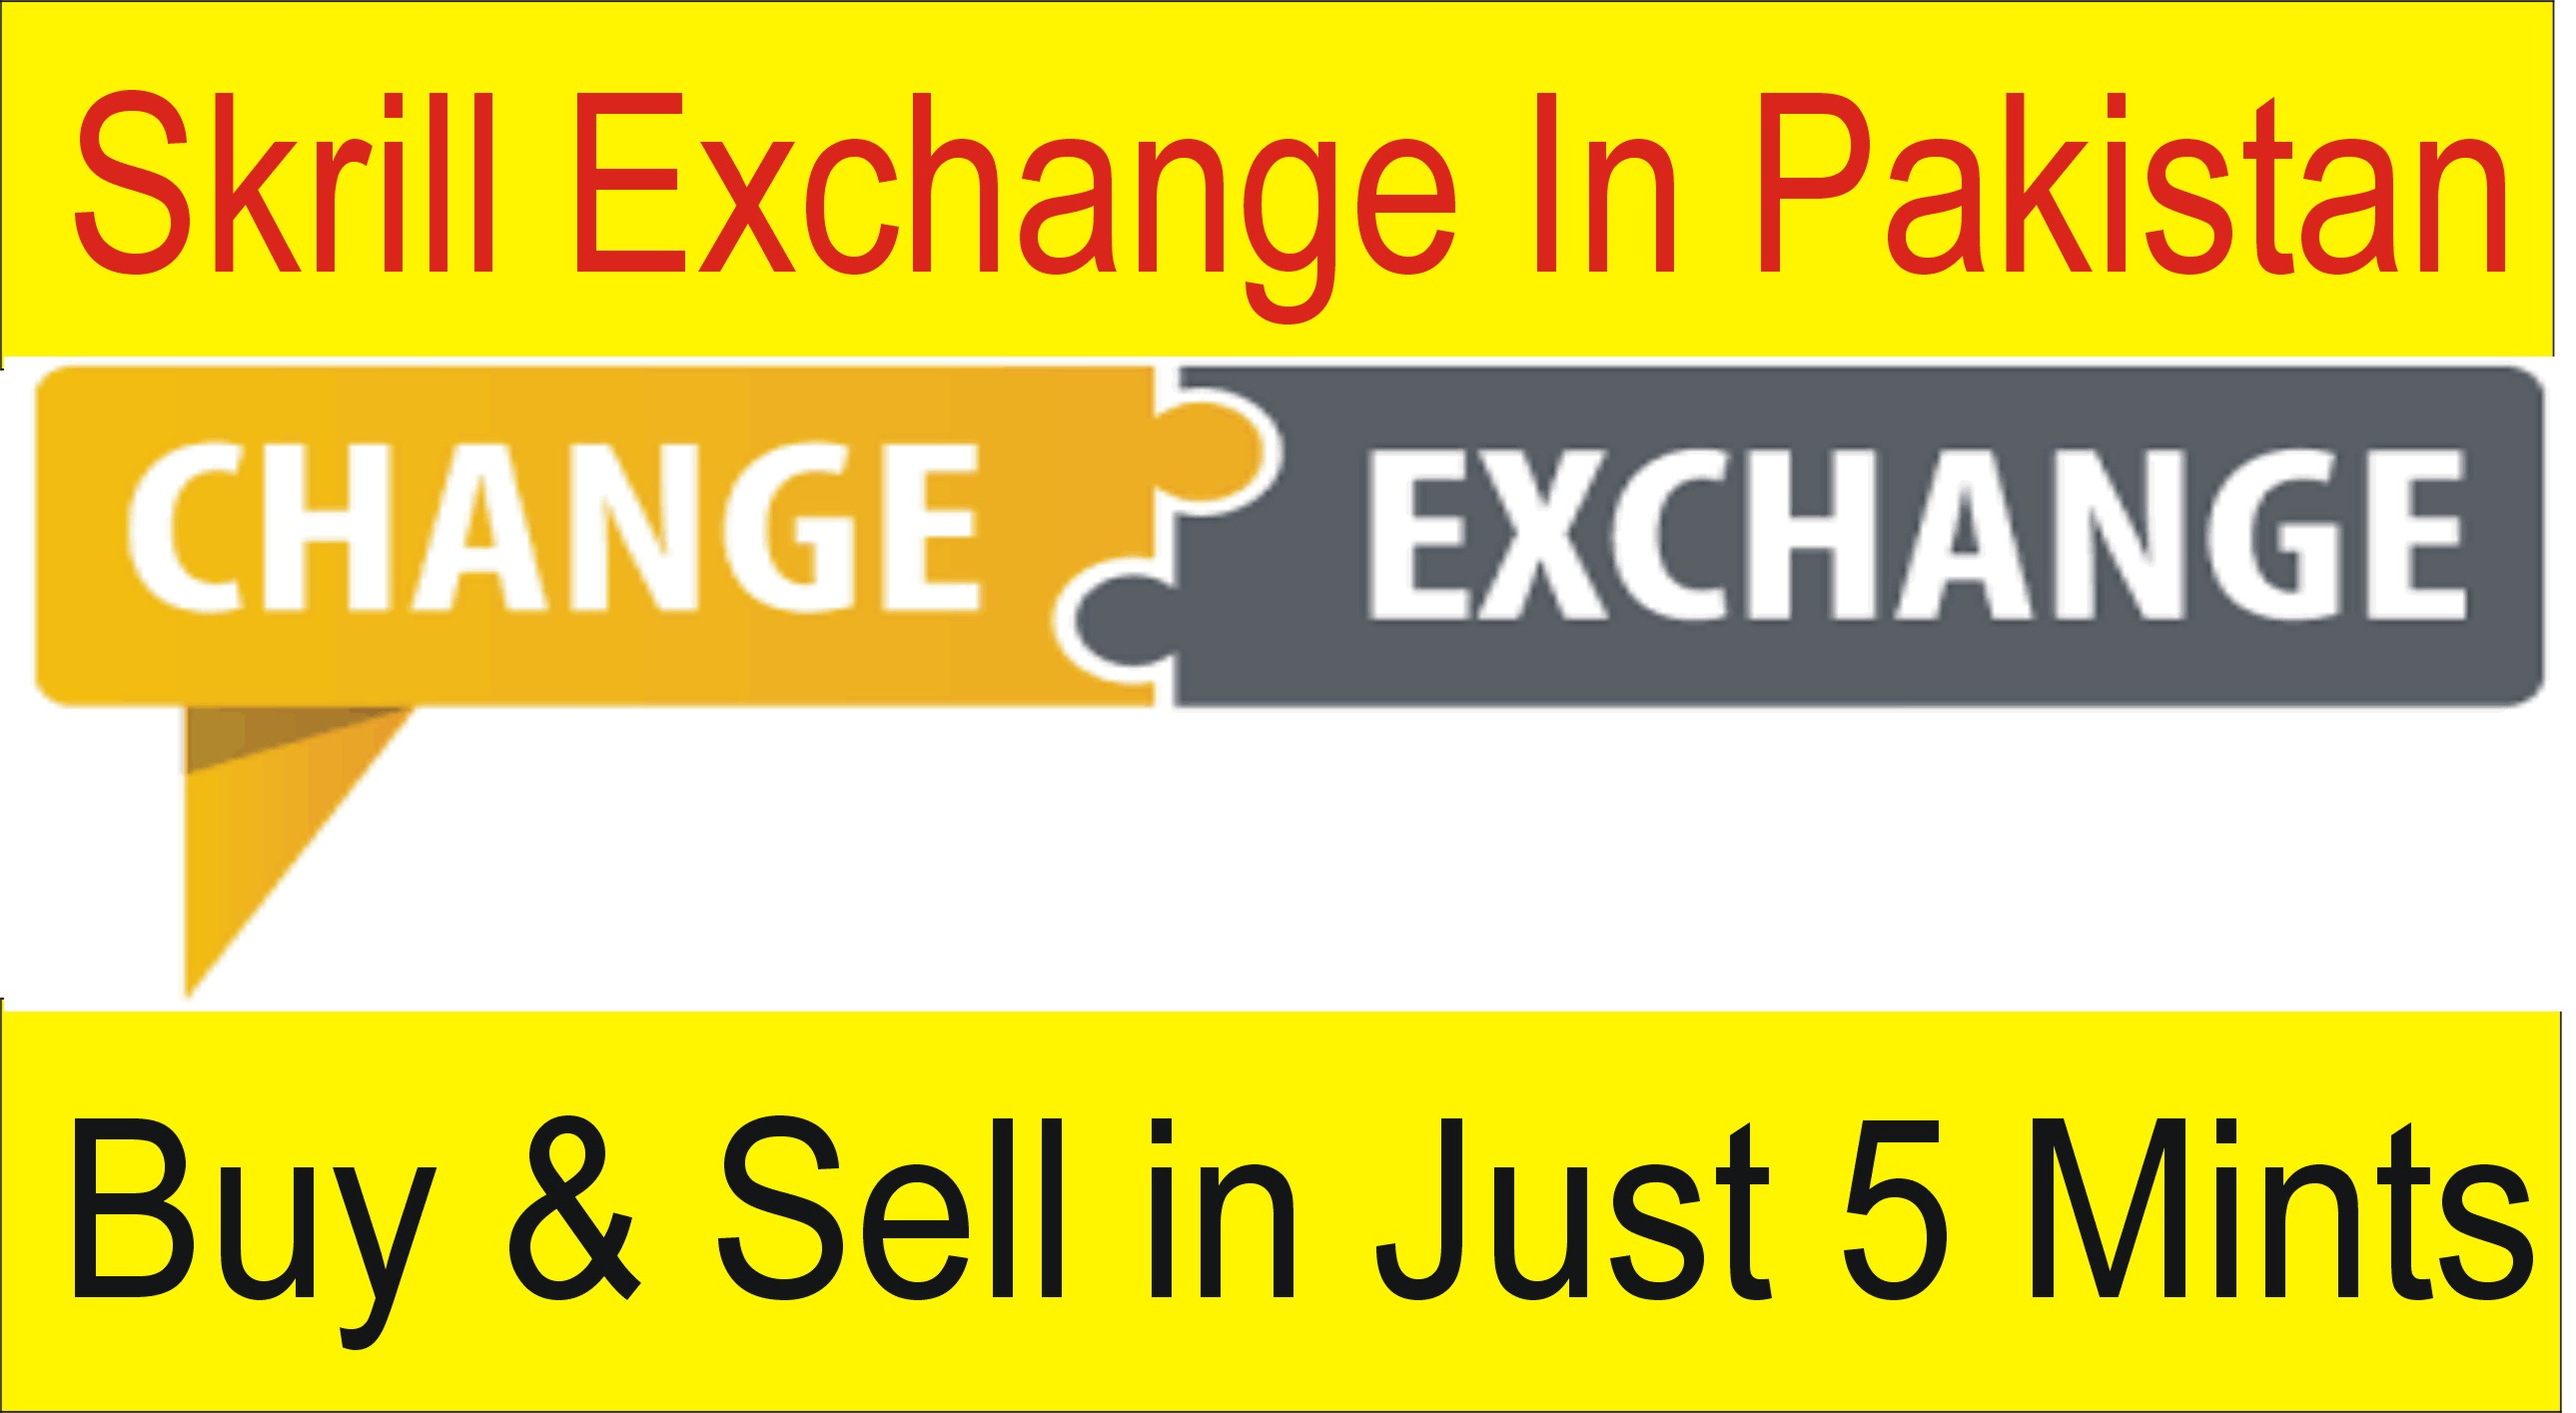 Skrill Exchange in Pakistan | Buy and Sell E Currency in